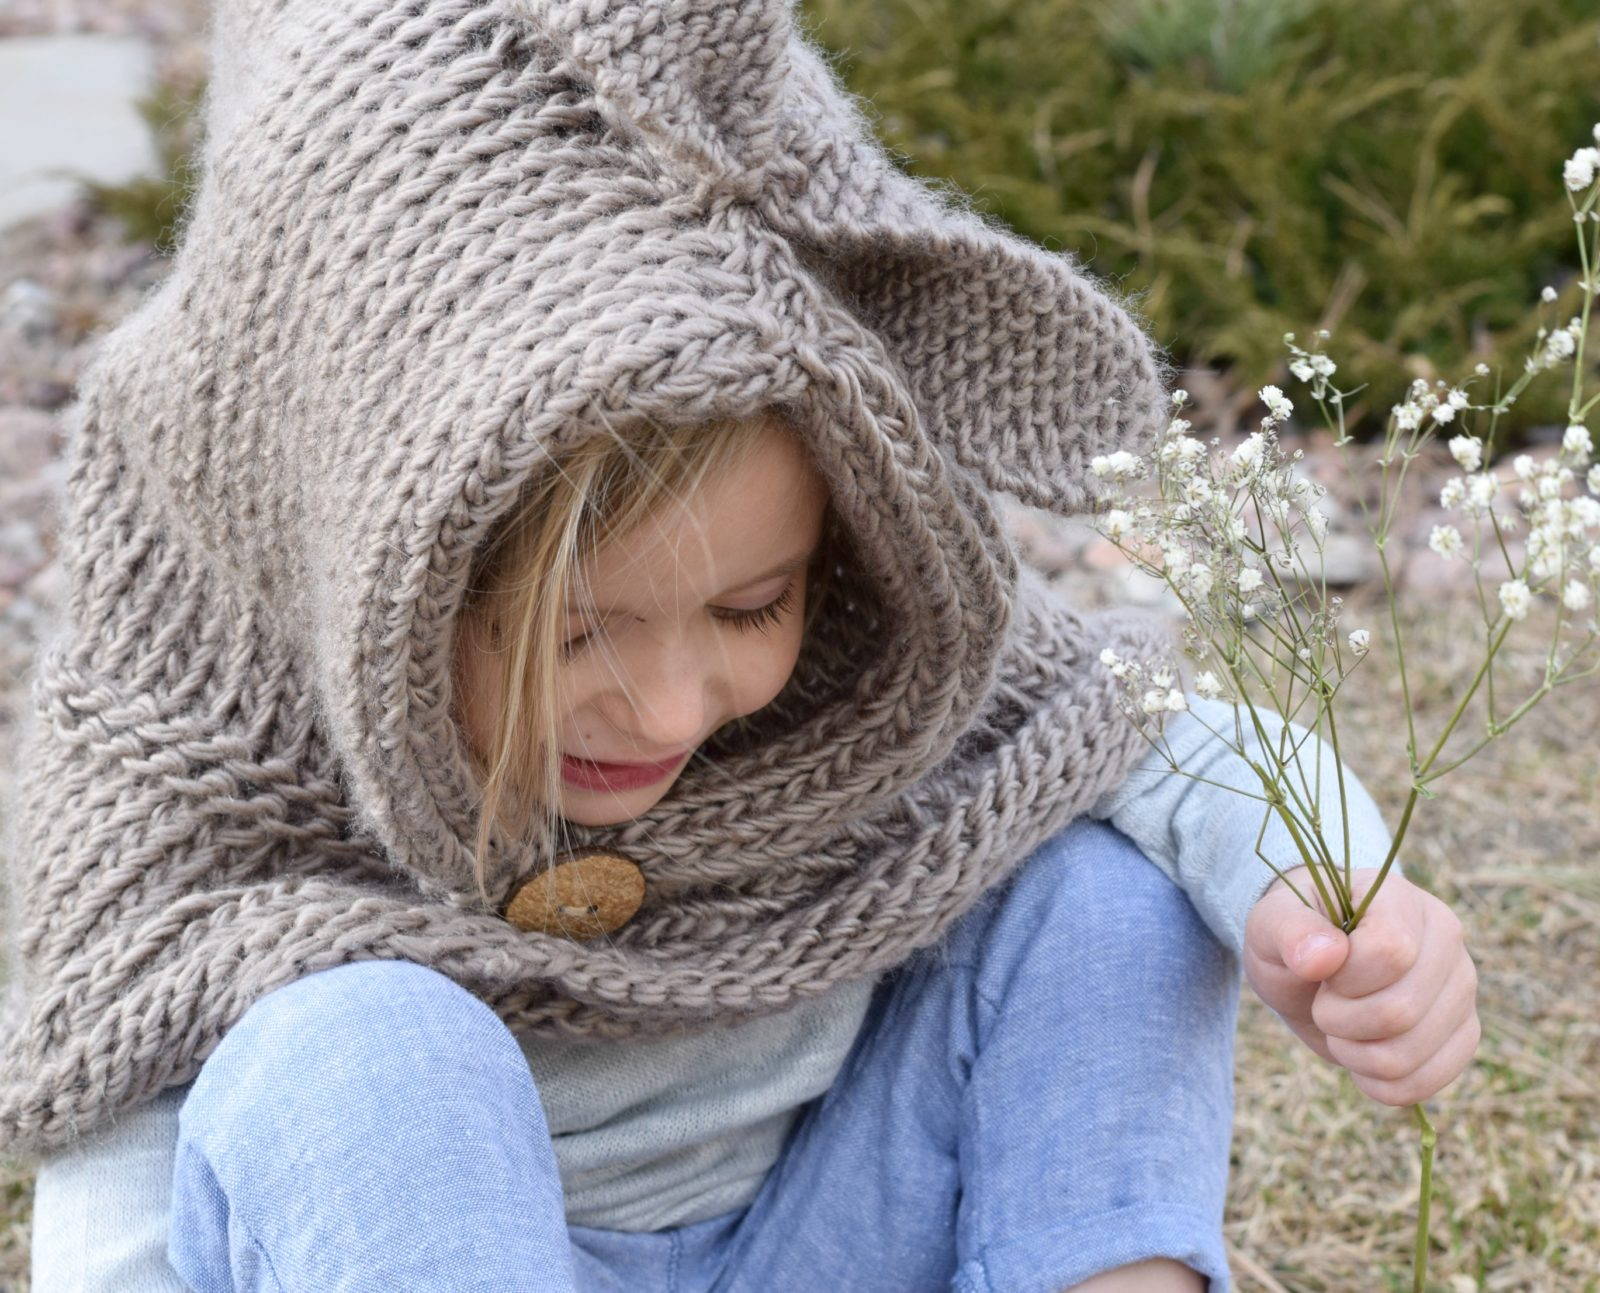 Knitting Pattern - Hooded Cowl Bunny